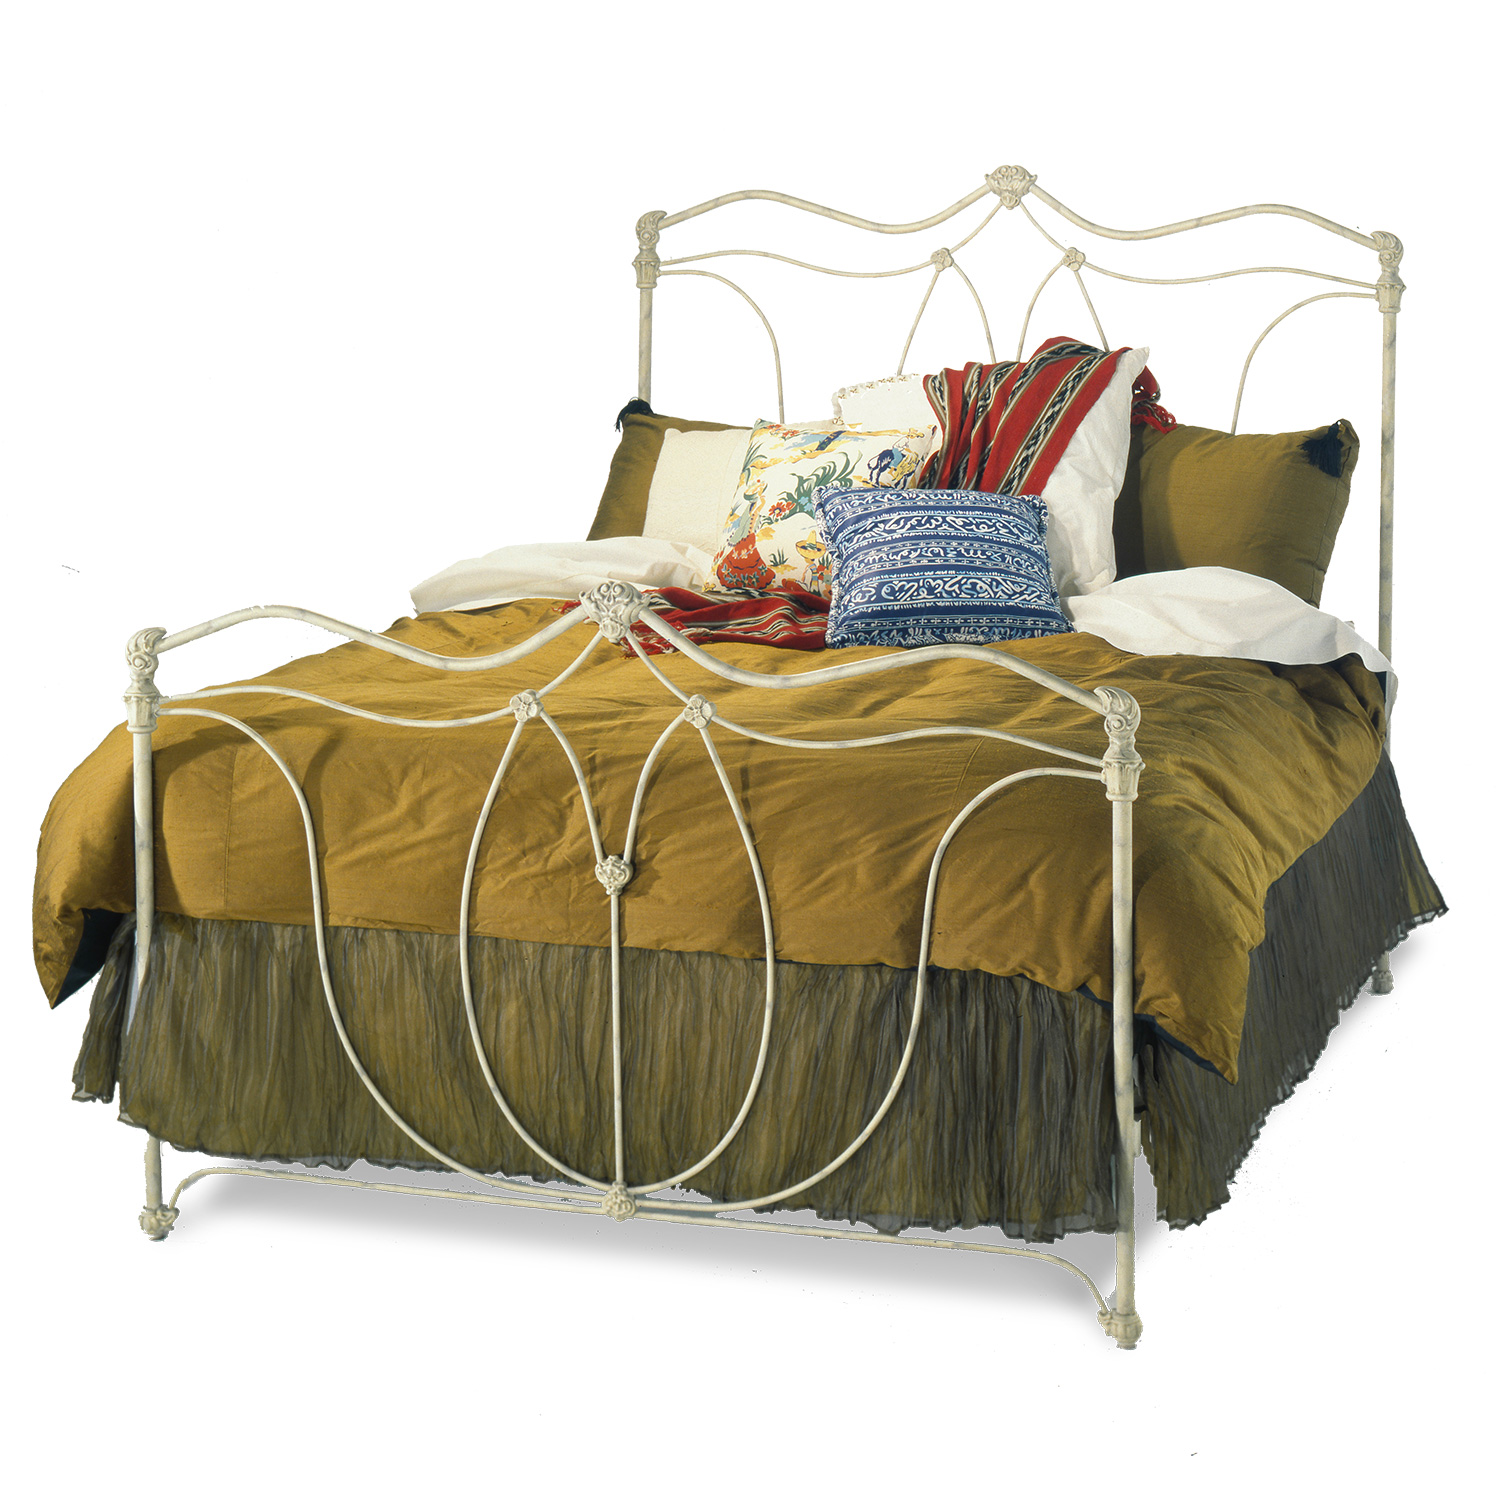 148 Victorian Iron Bed